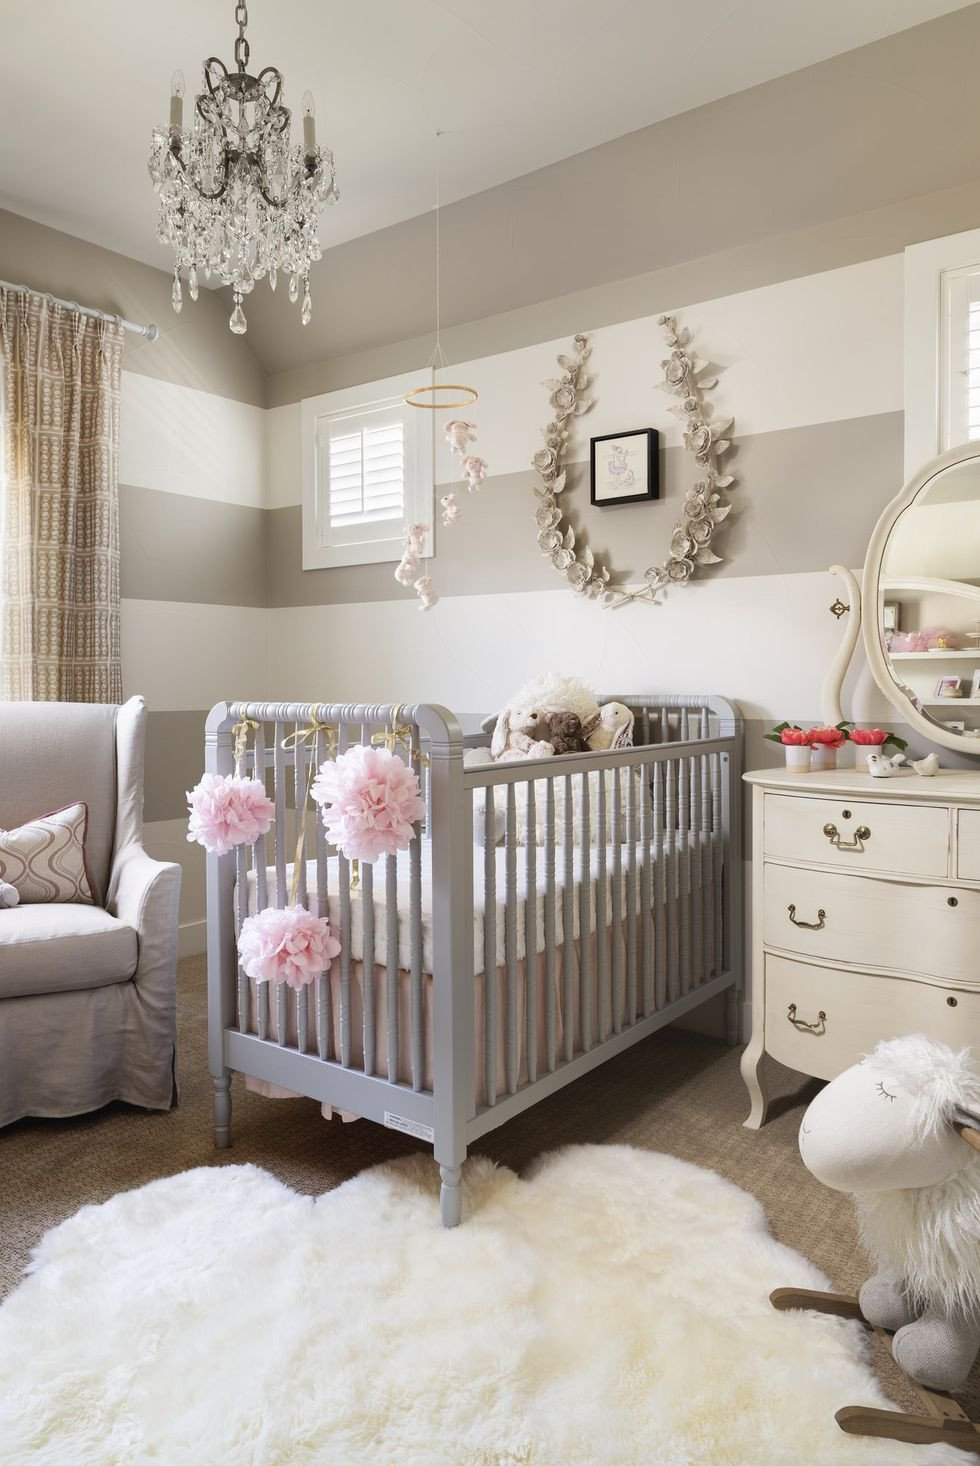 Baby Boy Bedroom Ideas New Stylish Baby Rooms even Adults Would Adore